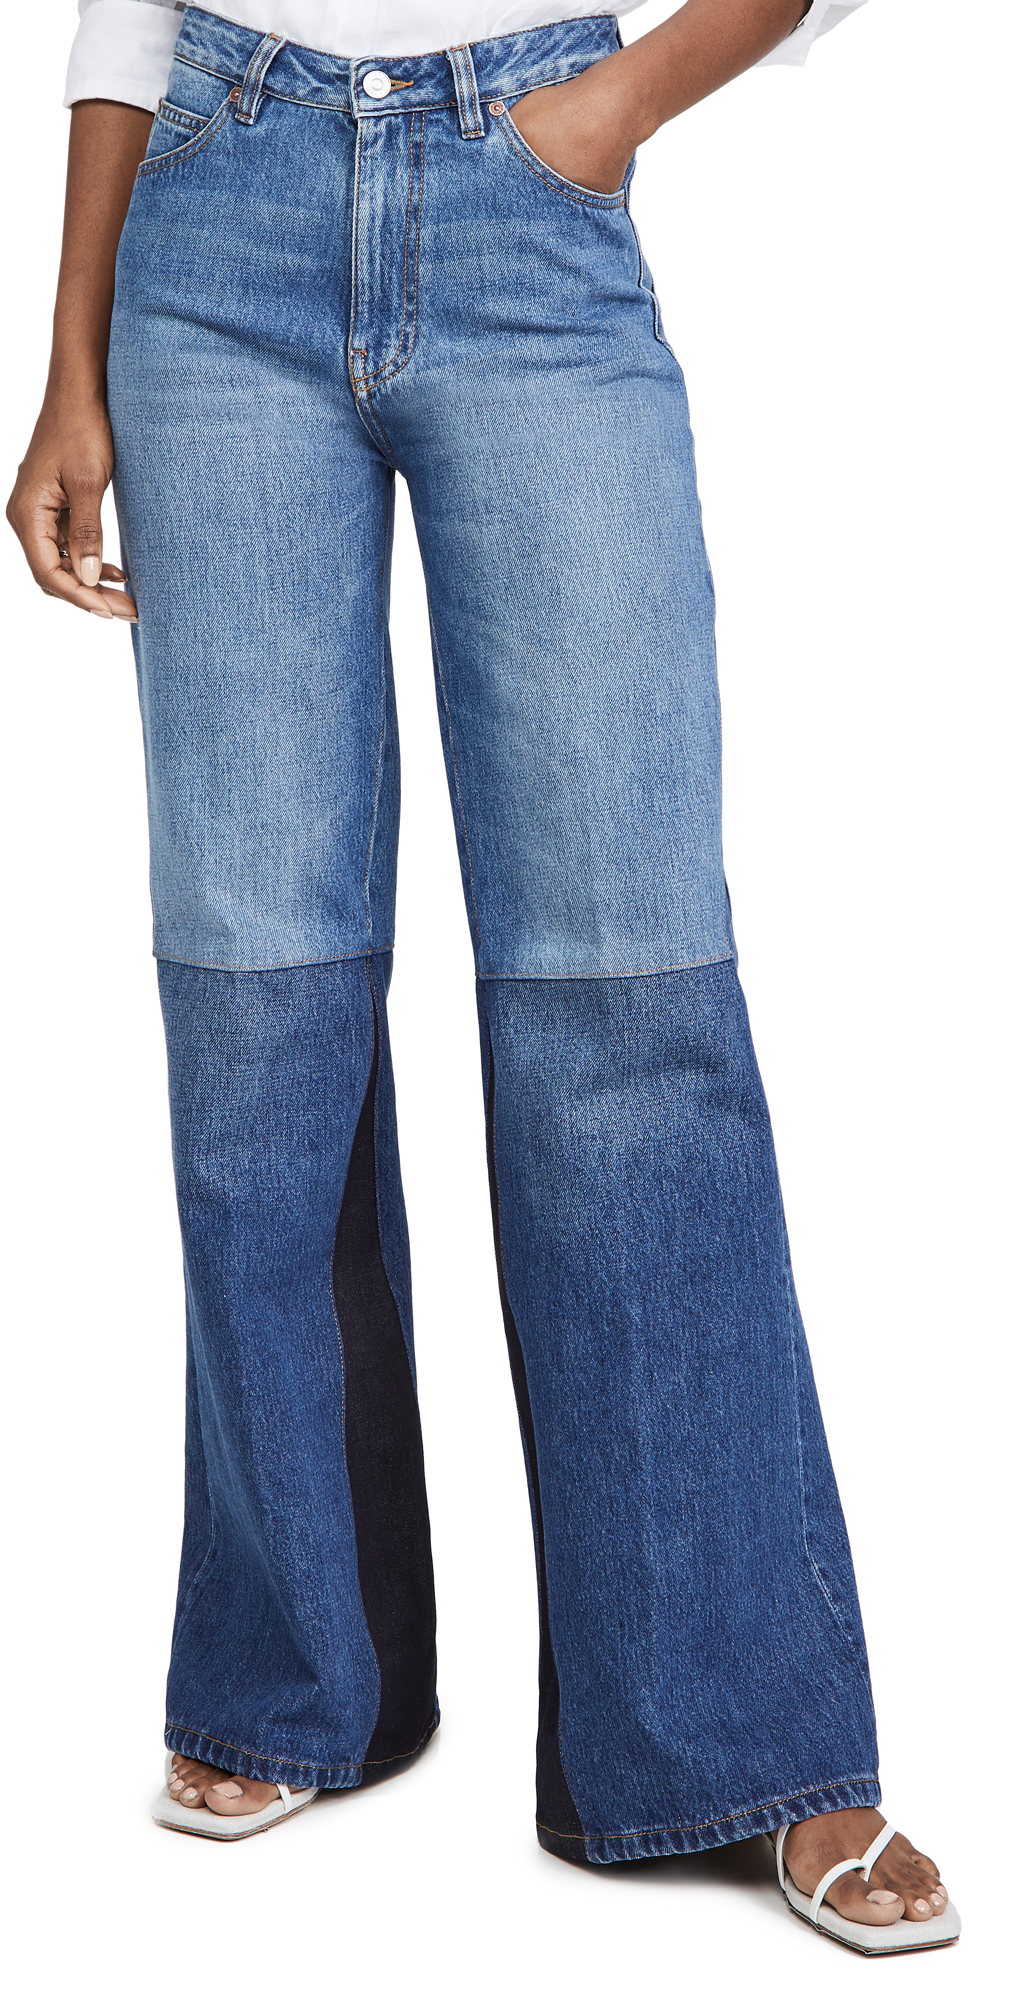 Victoria Beckham Patchwork High-rise Flared Wide-leg Jeans In Washed Indigo